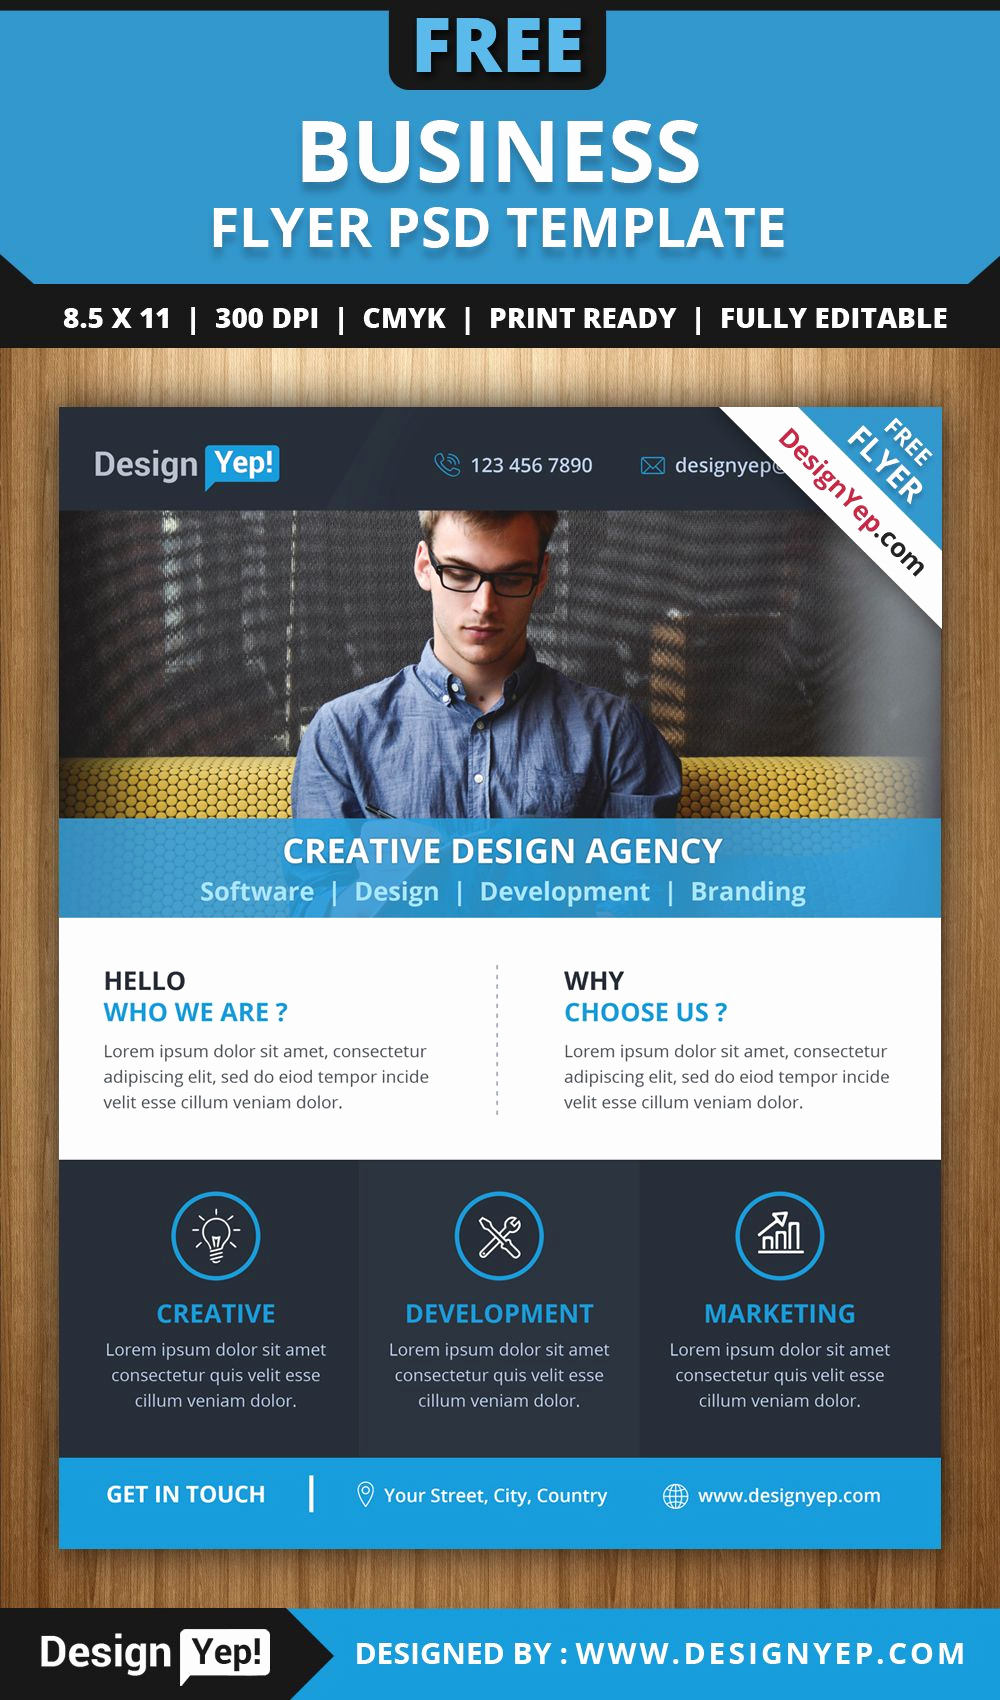 Free Business Flyer Templates Unique Free Business Flyer Psd Template 6666 Designyep